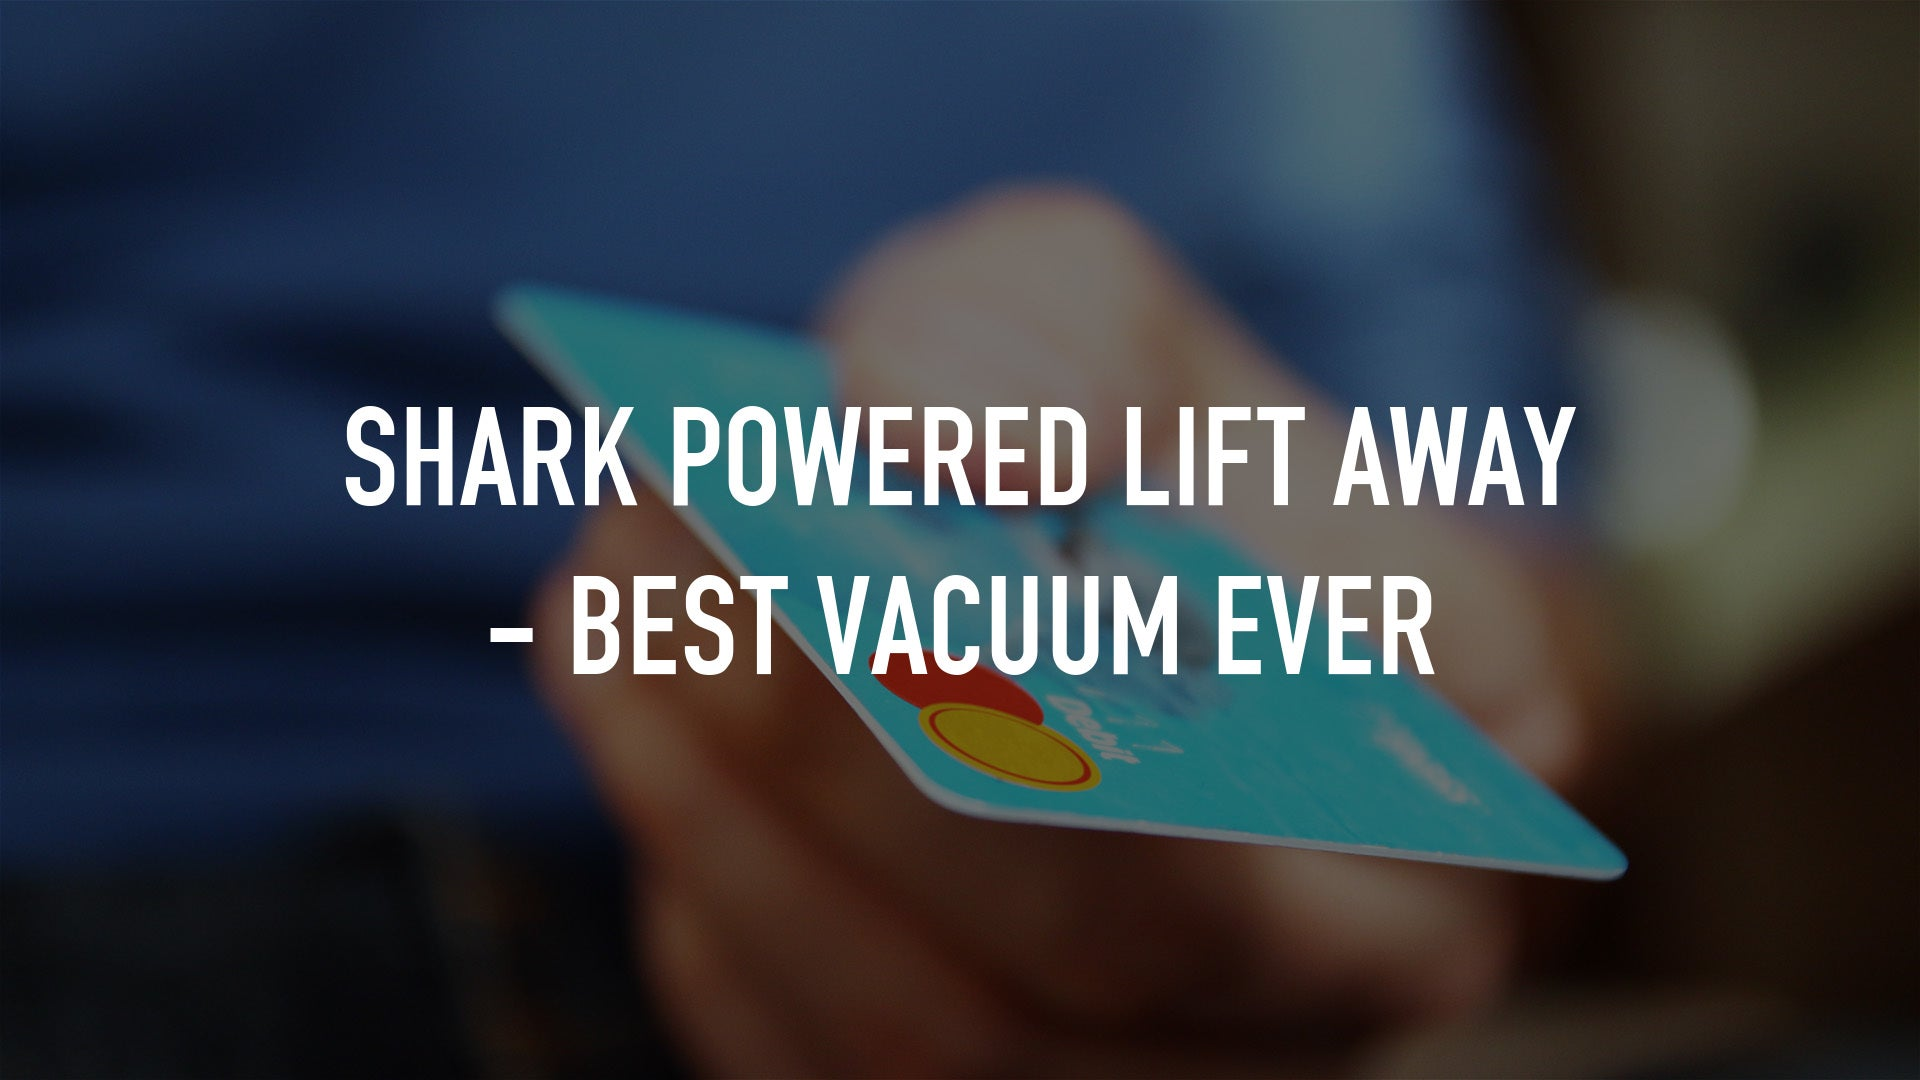 Shark Powered Lift Away - Best Vacuum Ever